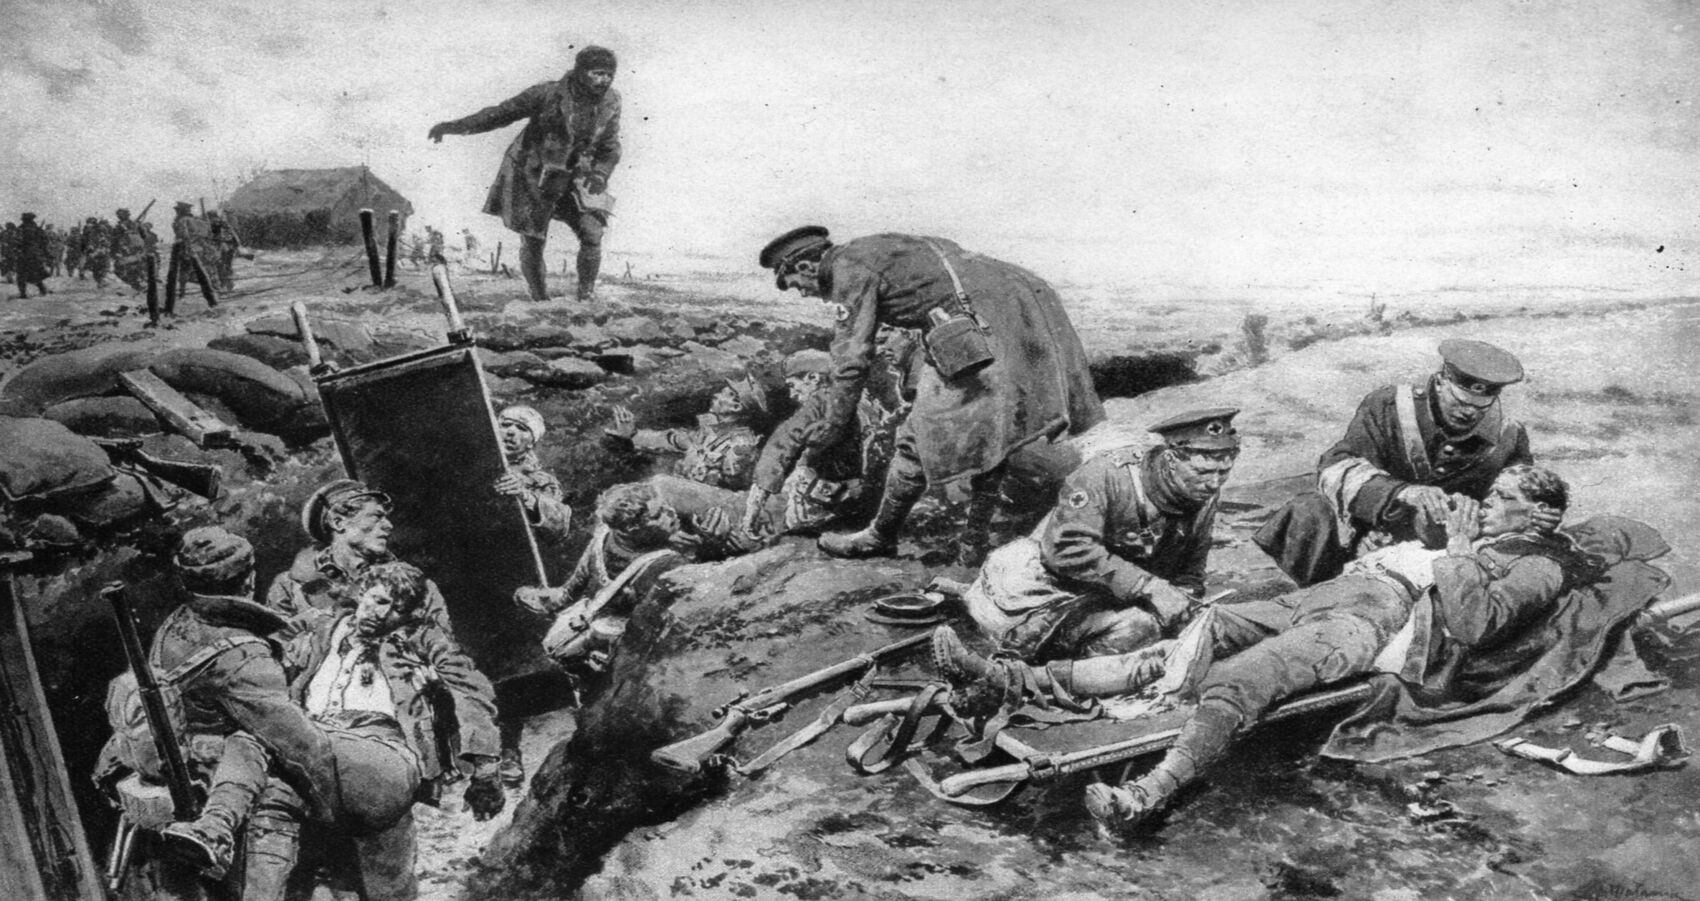 RAMC orderlies giving first aid to the wounded after successful advance (slider).jpg